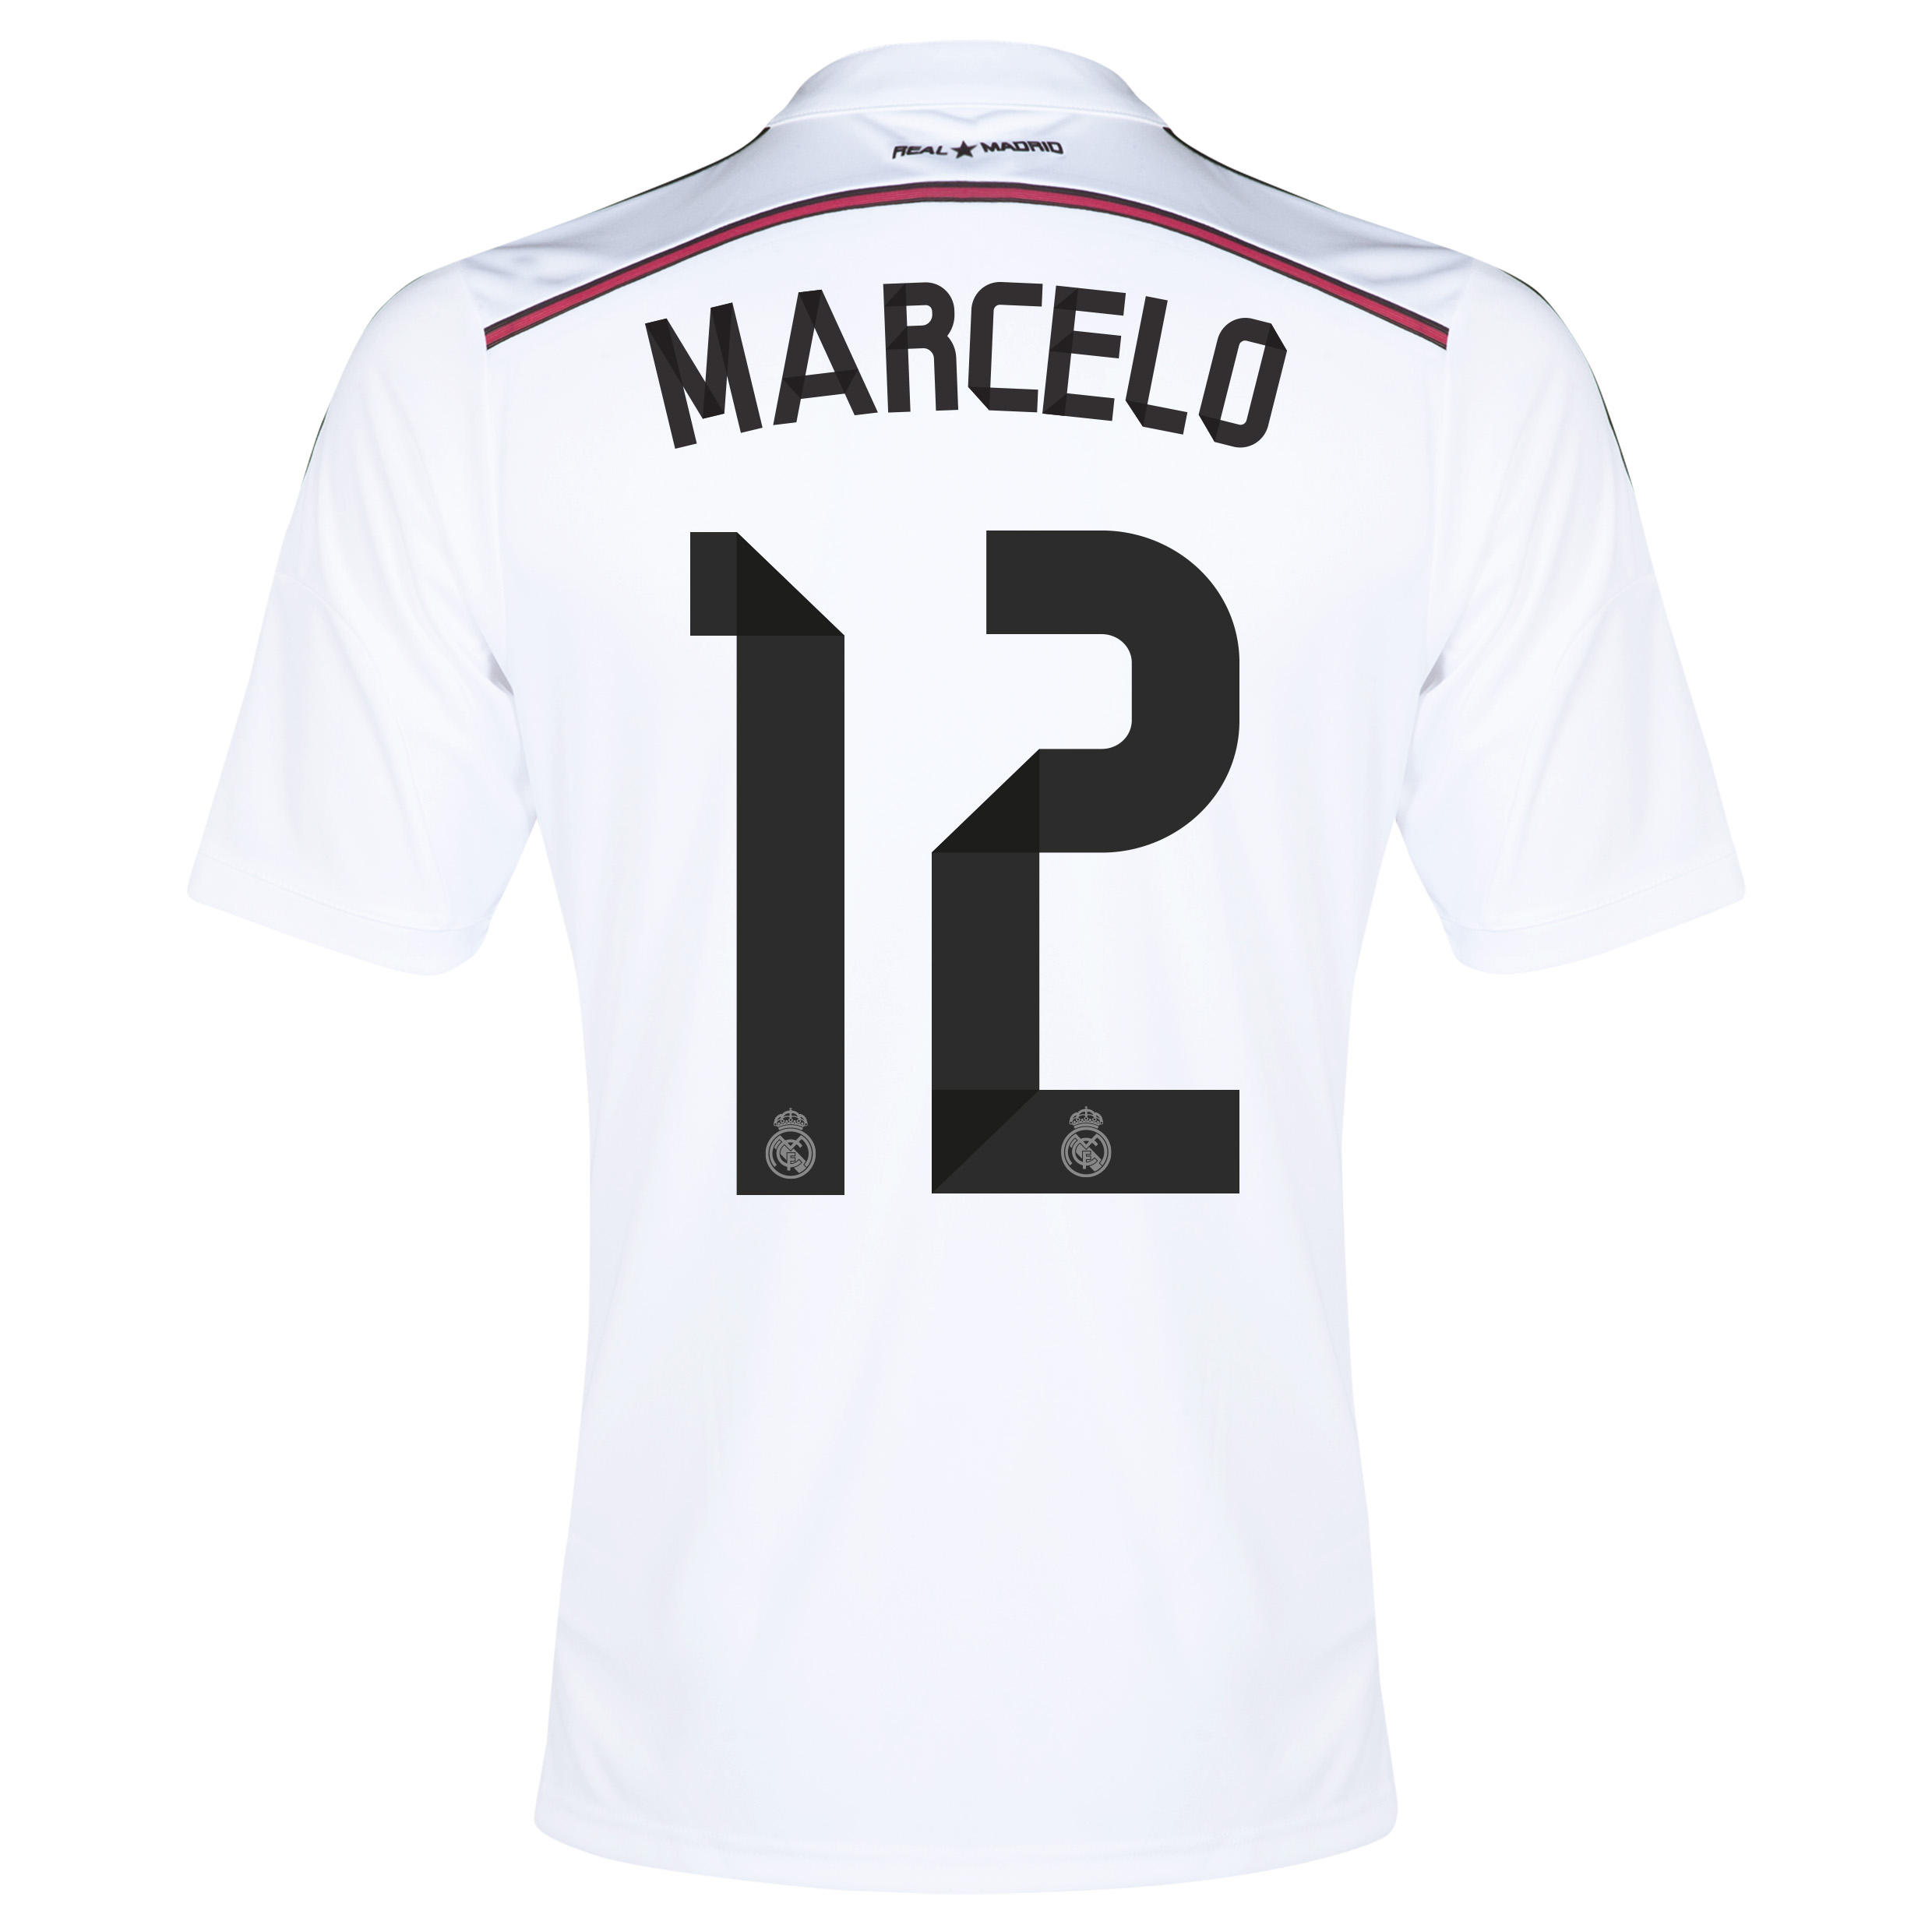 Real Madrid Home Shirt 2014/15 with Marcelo 12 printing